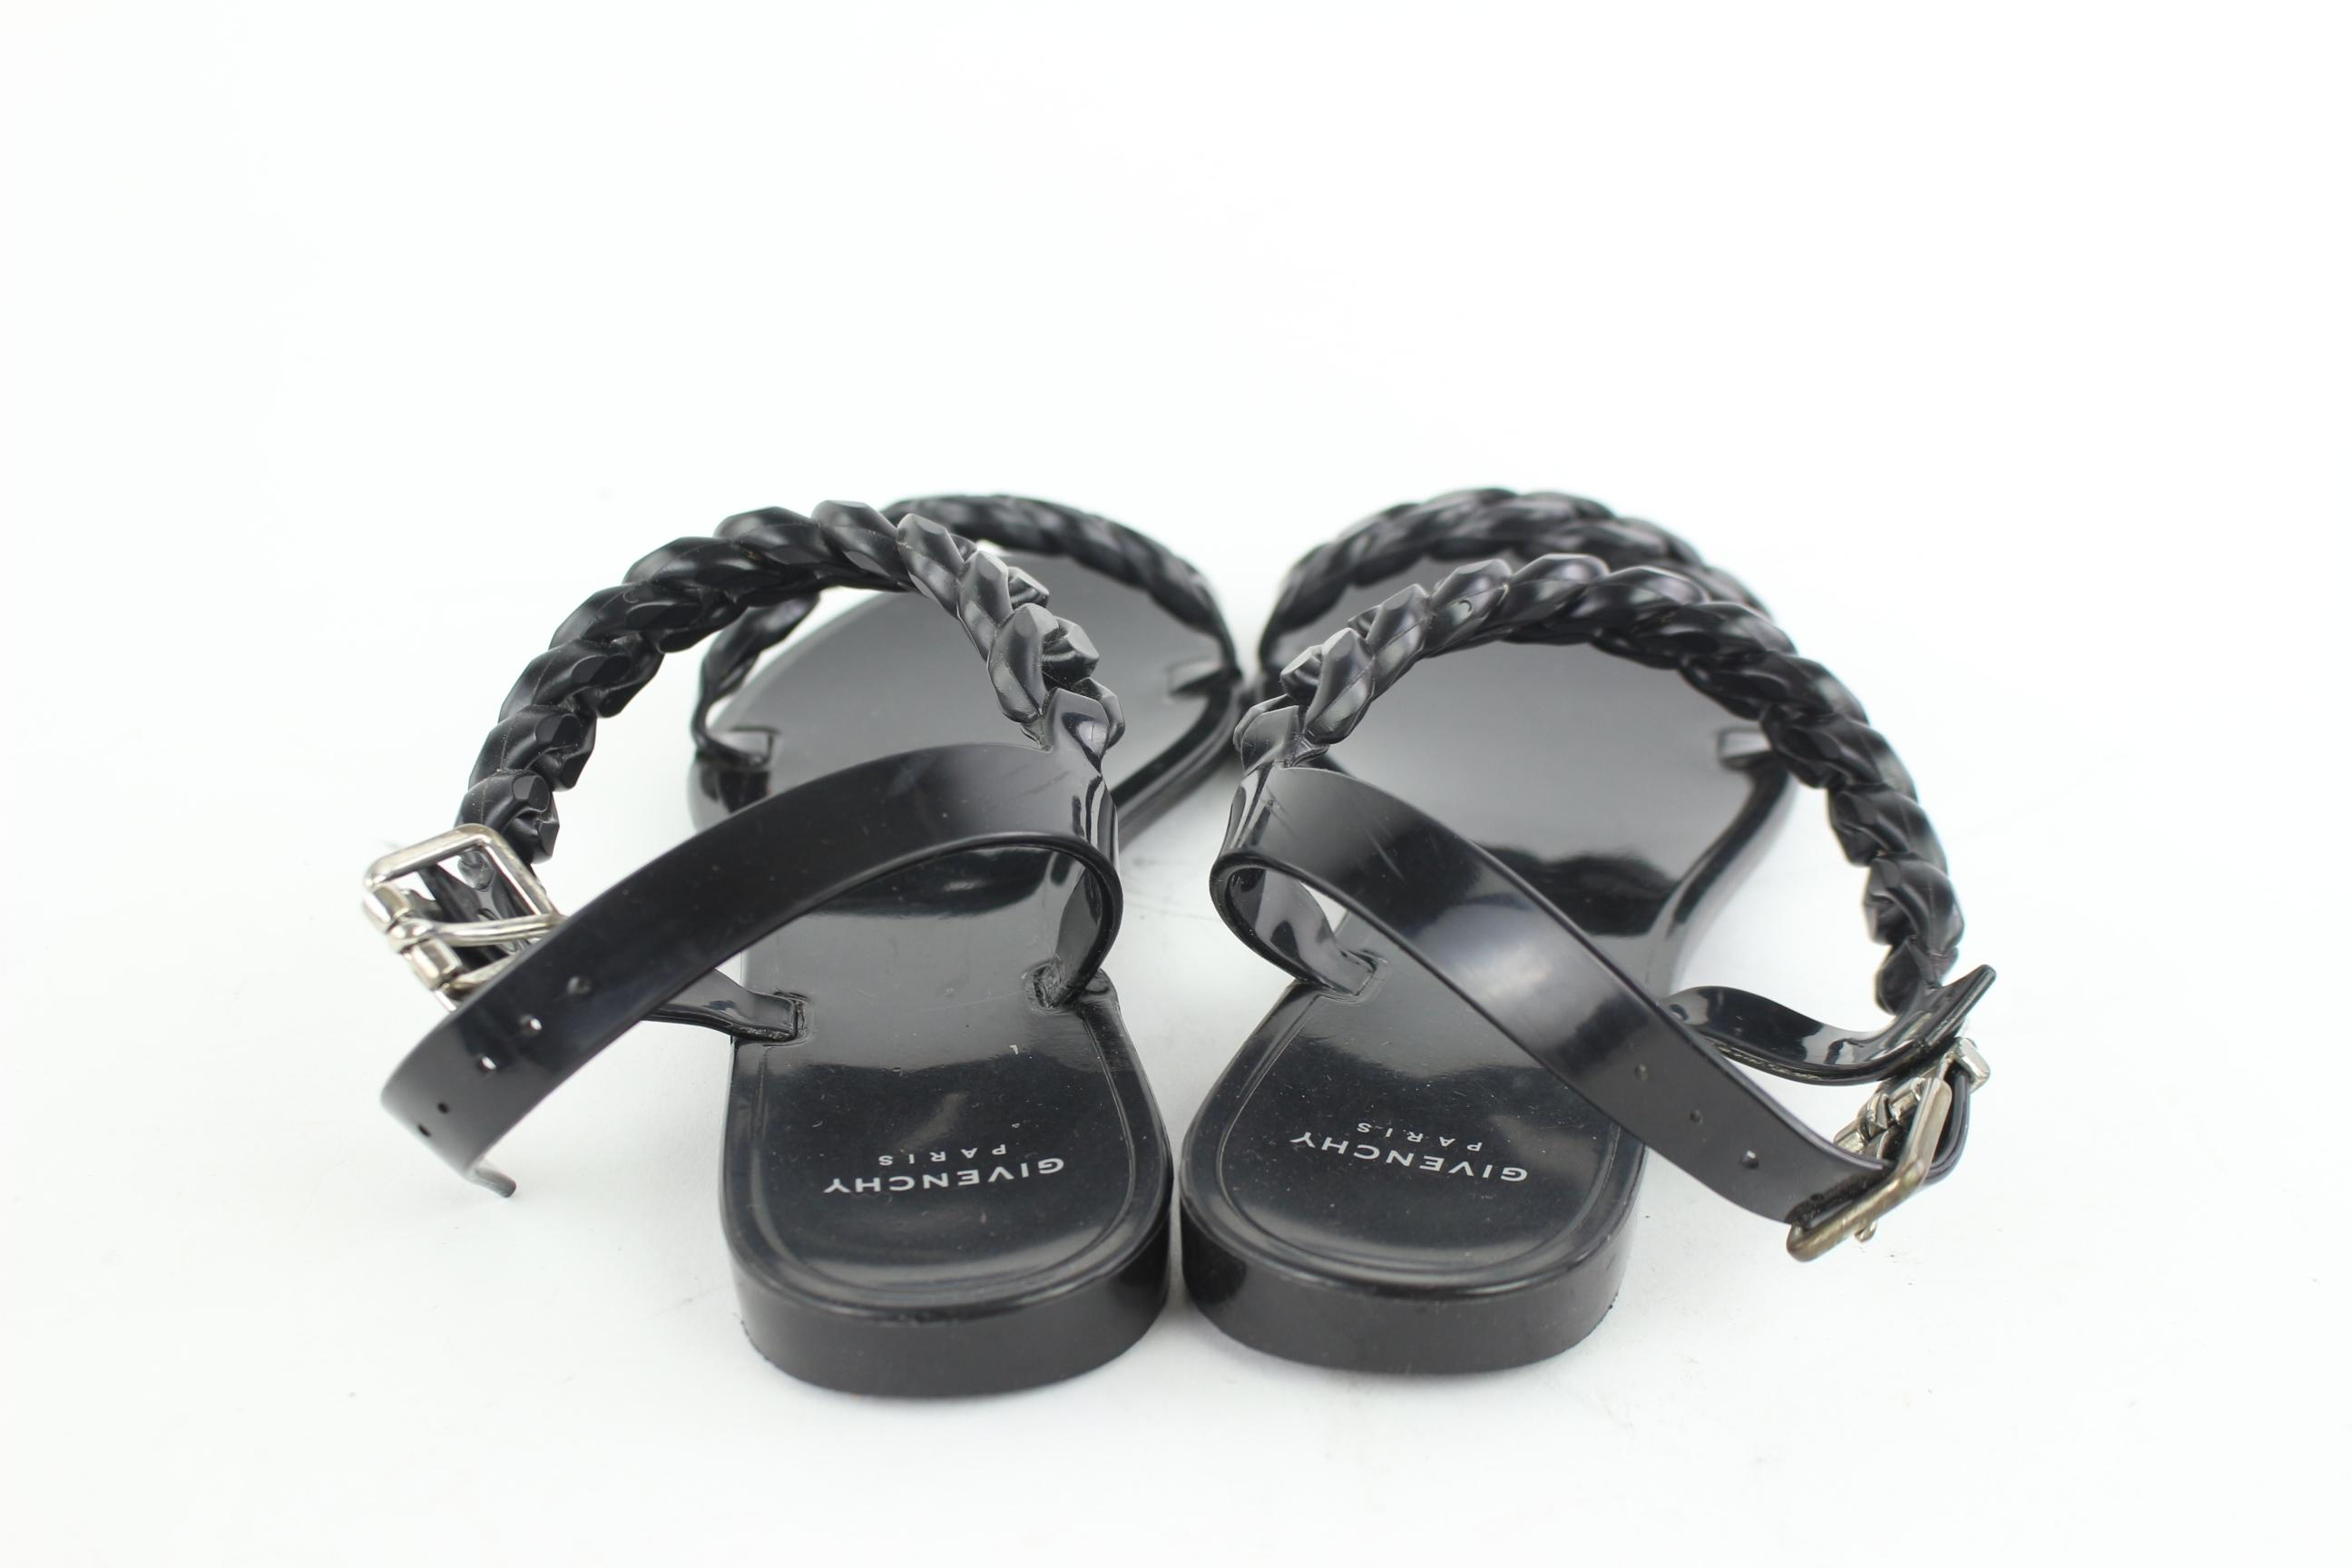 030322f263ef ... Givenchy Black Chain-link Jelly Sandals 4mz0918 4mz0918 4mz0918 Flats Size  EU 37 (Approx ...